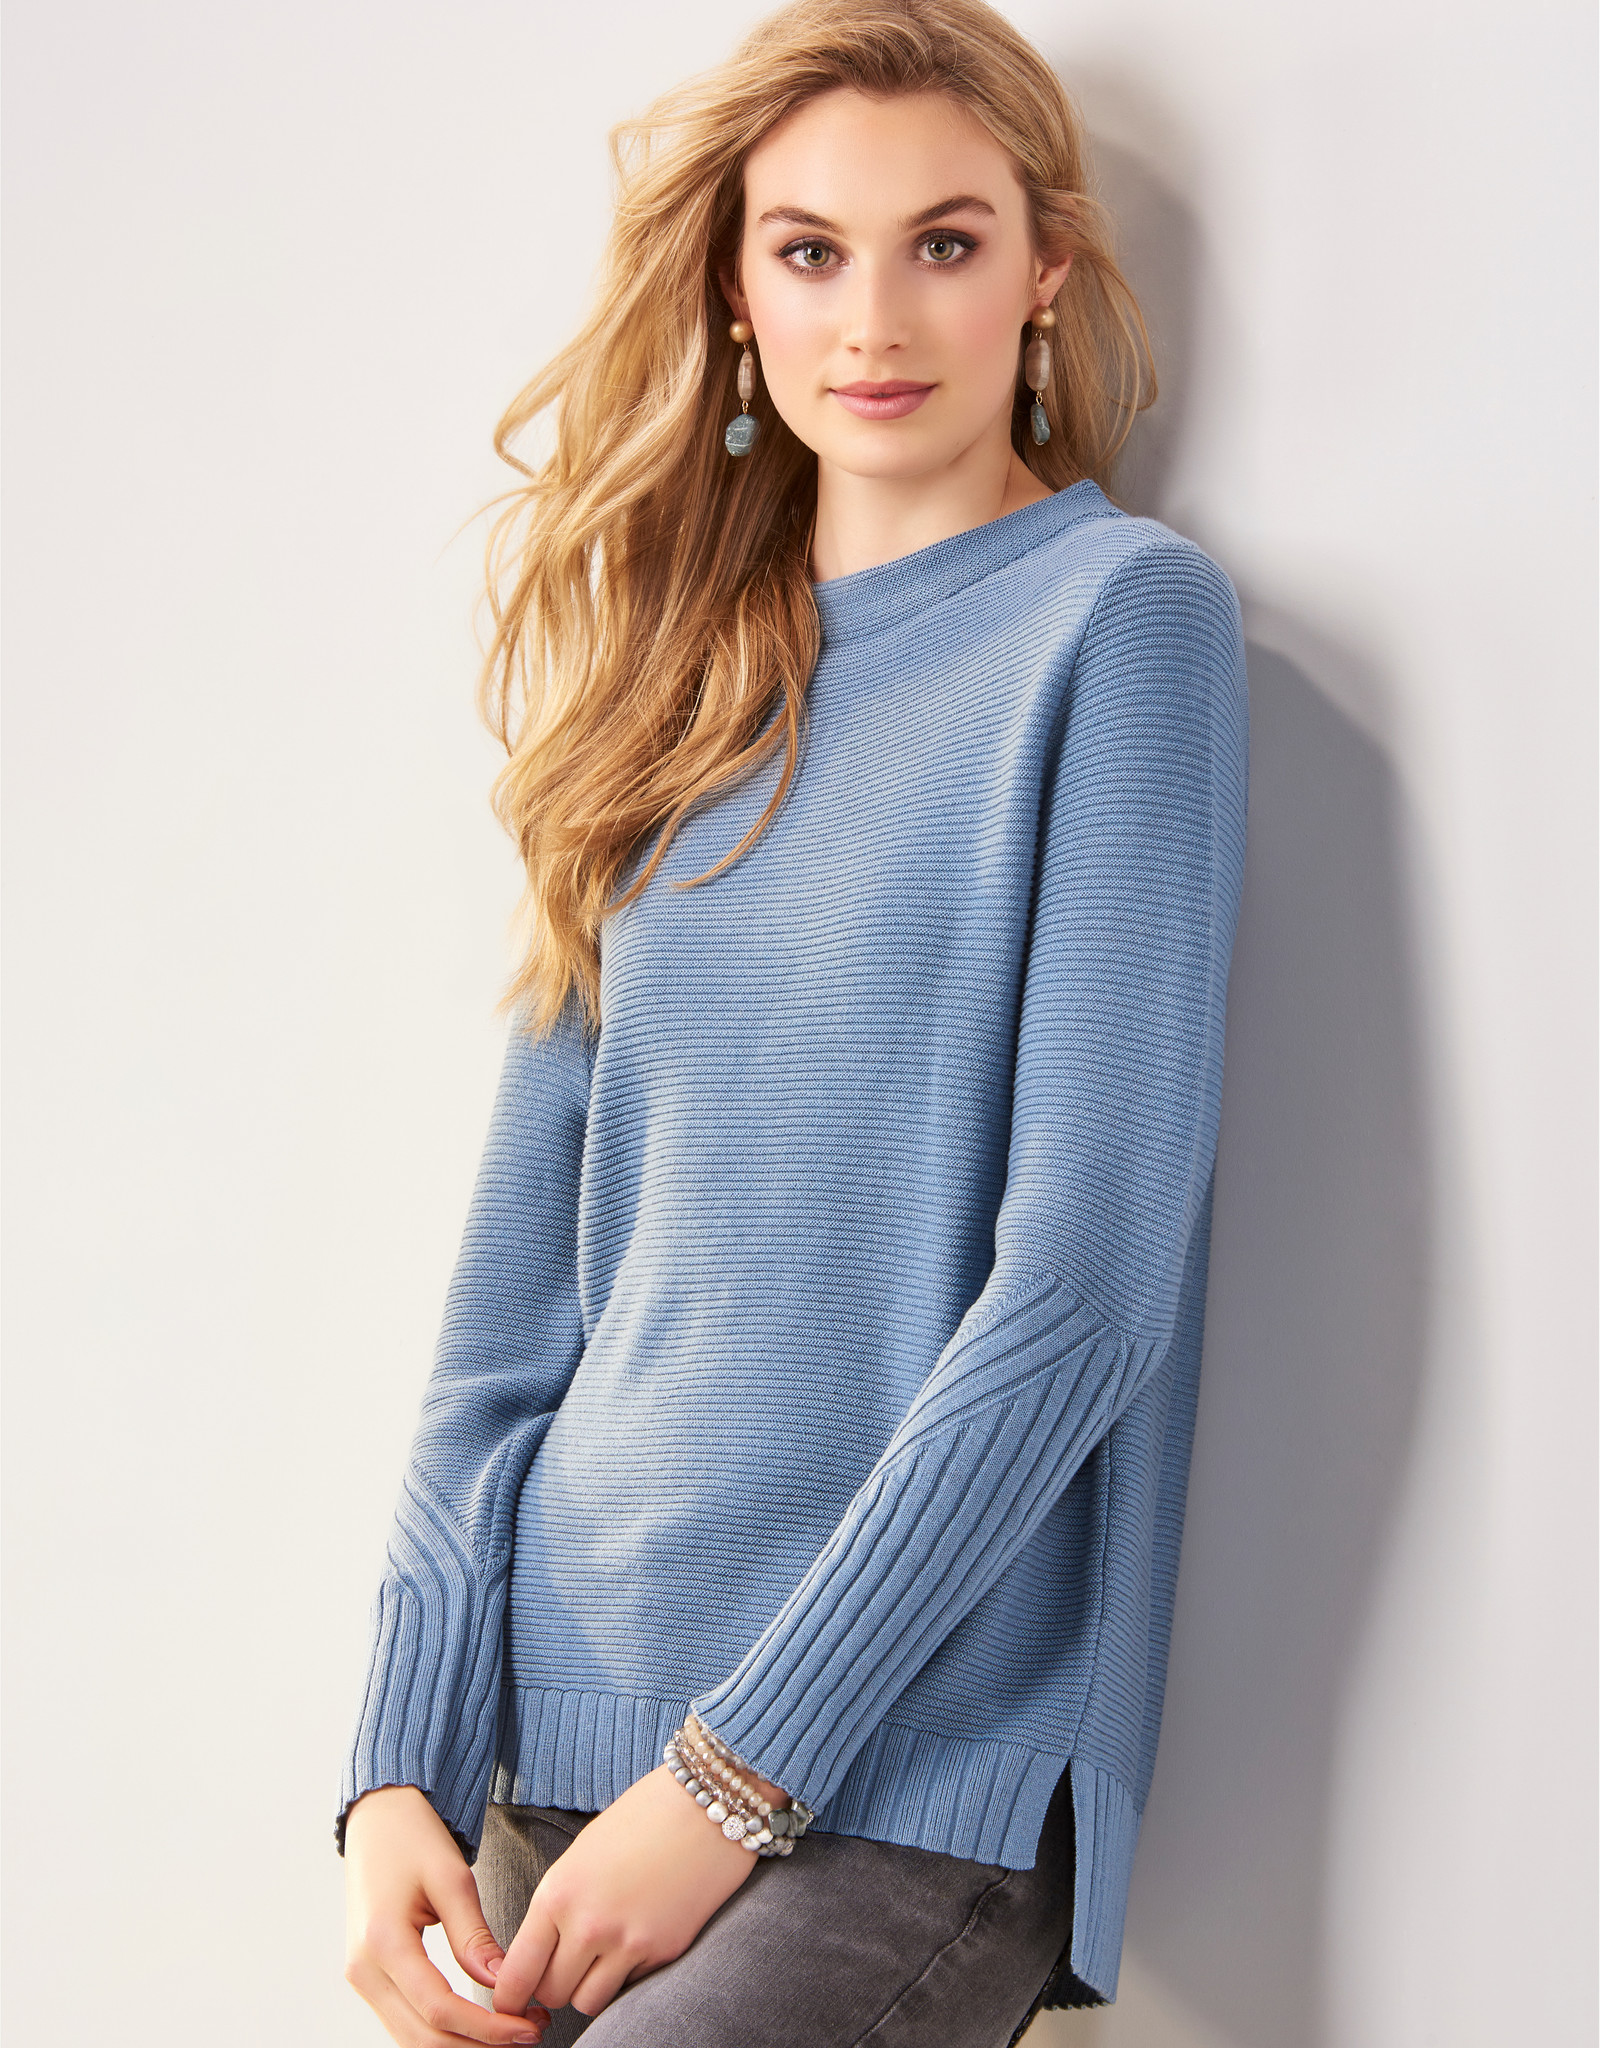 Charlie Paige CP - Ribbed Mock Neck Sweater (2 colors)